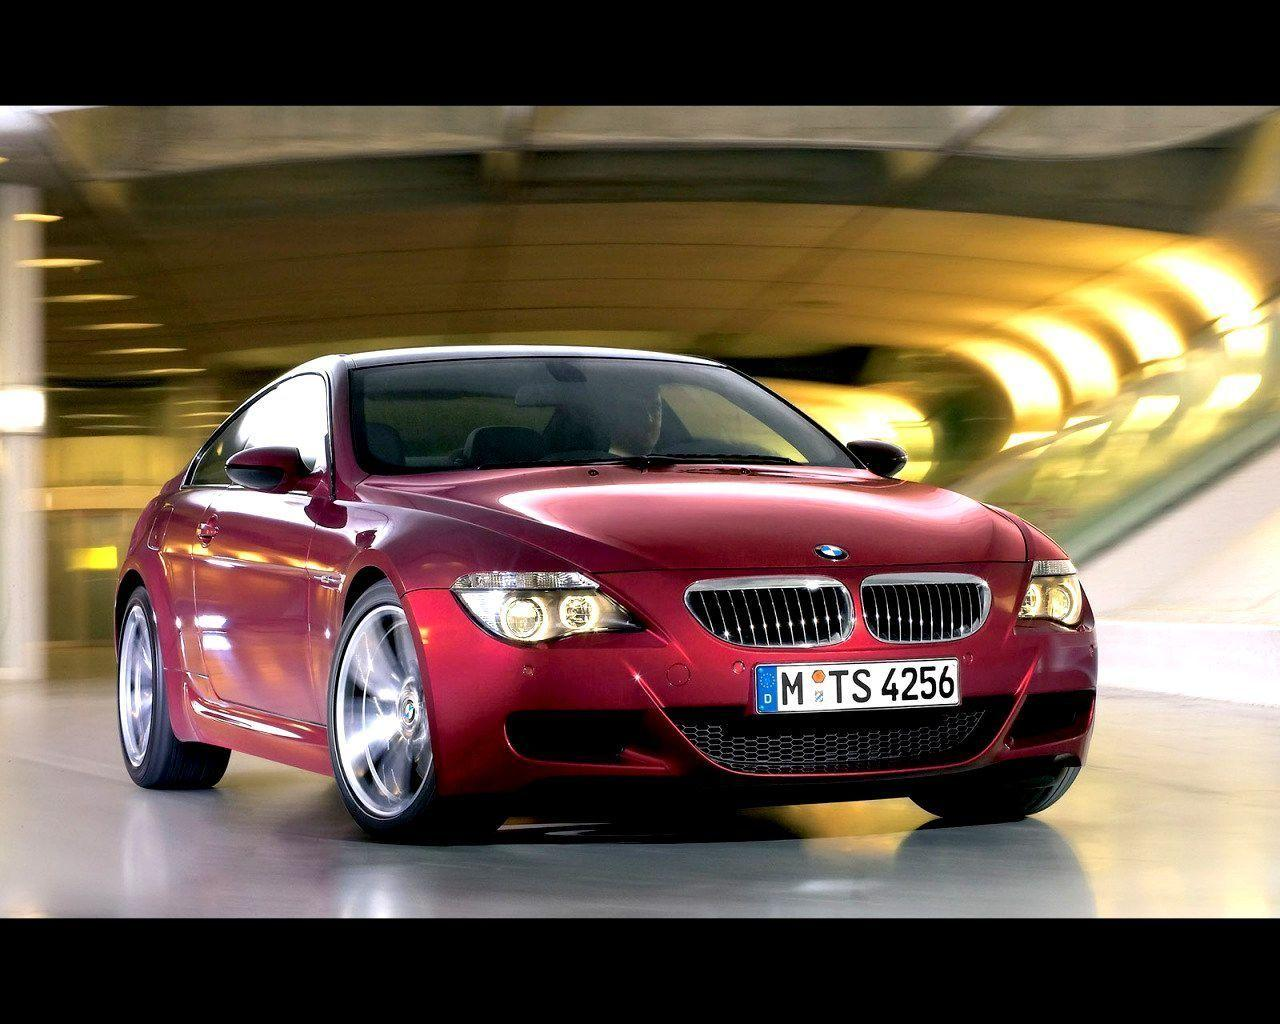 2006 BMW M6 Wallpaper 06 - 1280x1024